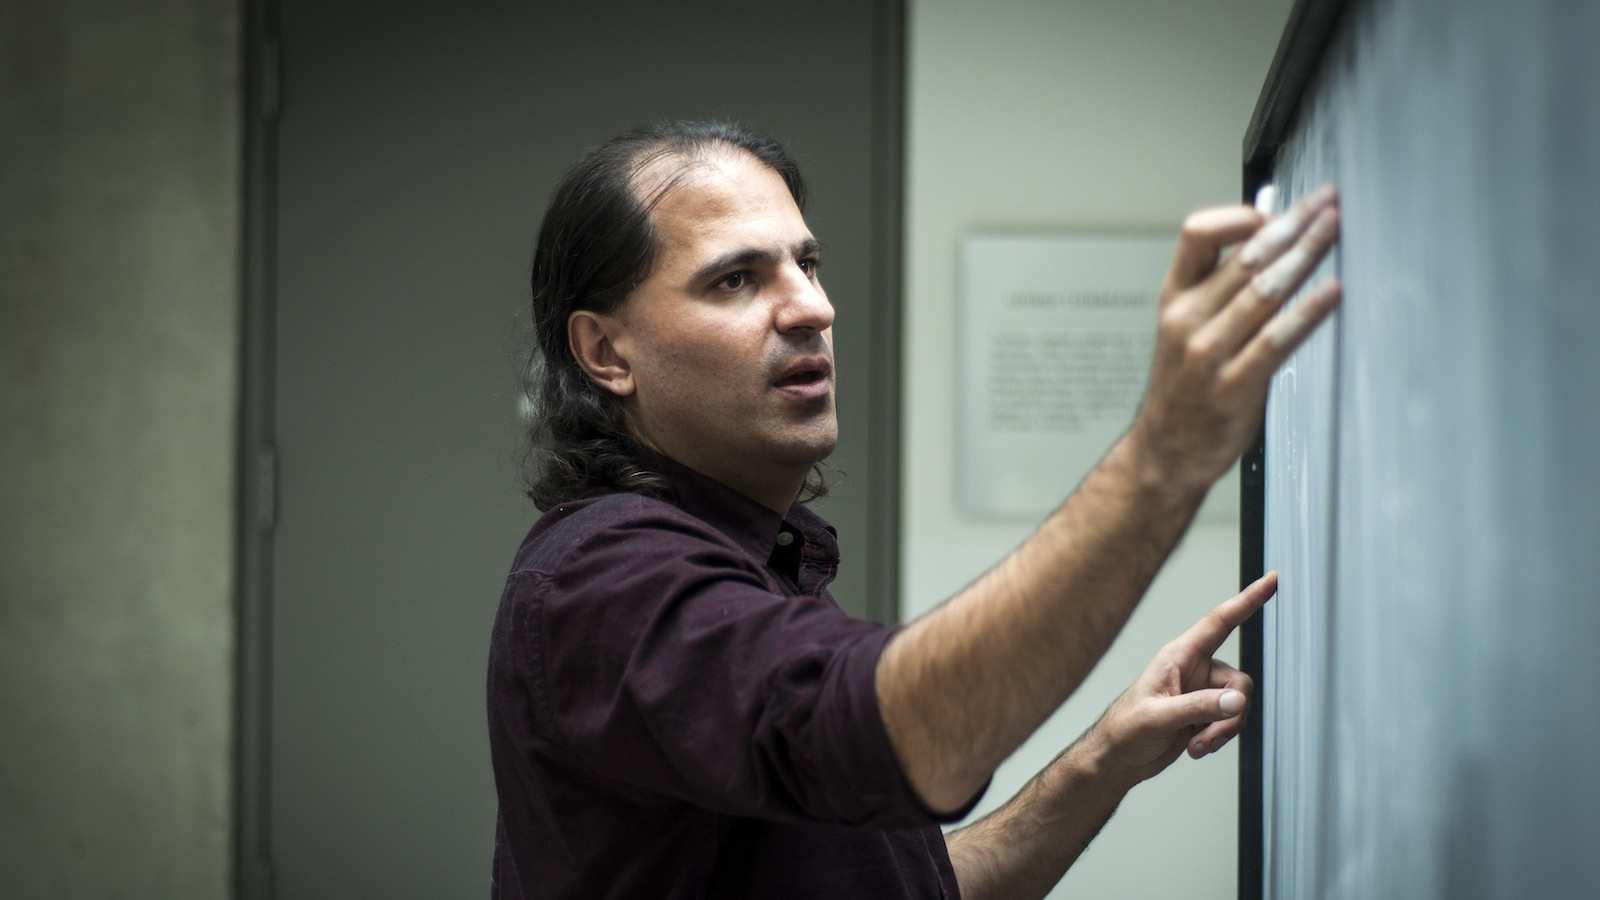 Nima Arkani-Hamed, from Princeton's Institute for Advanced Study, will be tonight's speaker at the Perimeter Public Lecture. (Photograph by Gabriela Secara)